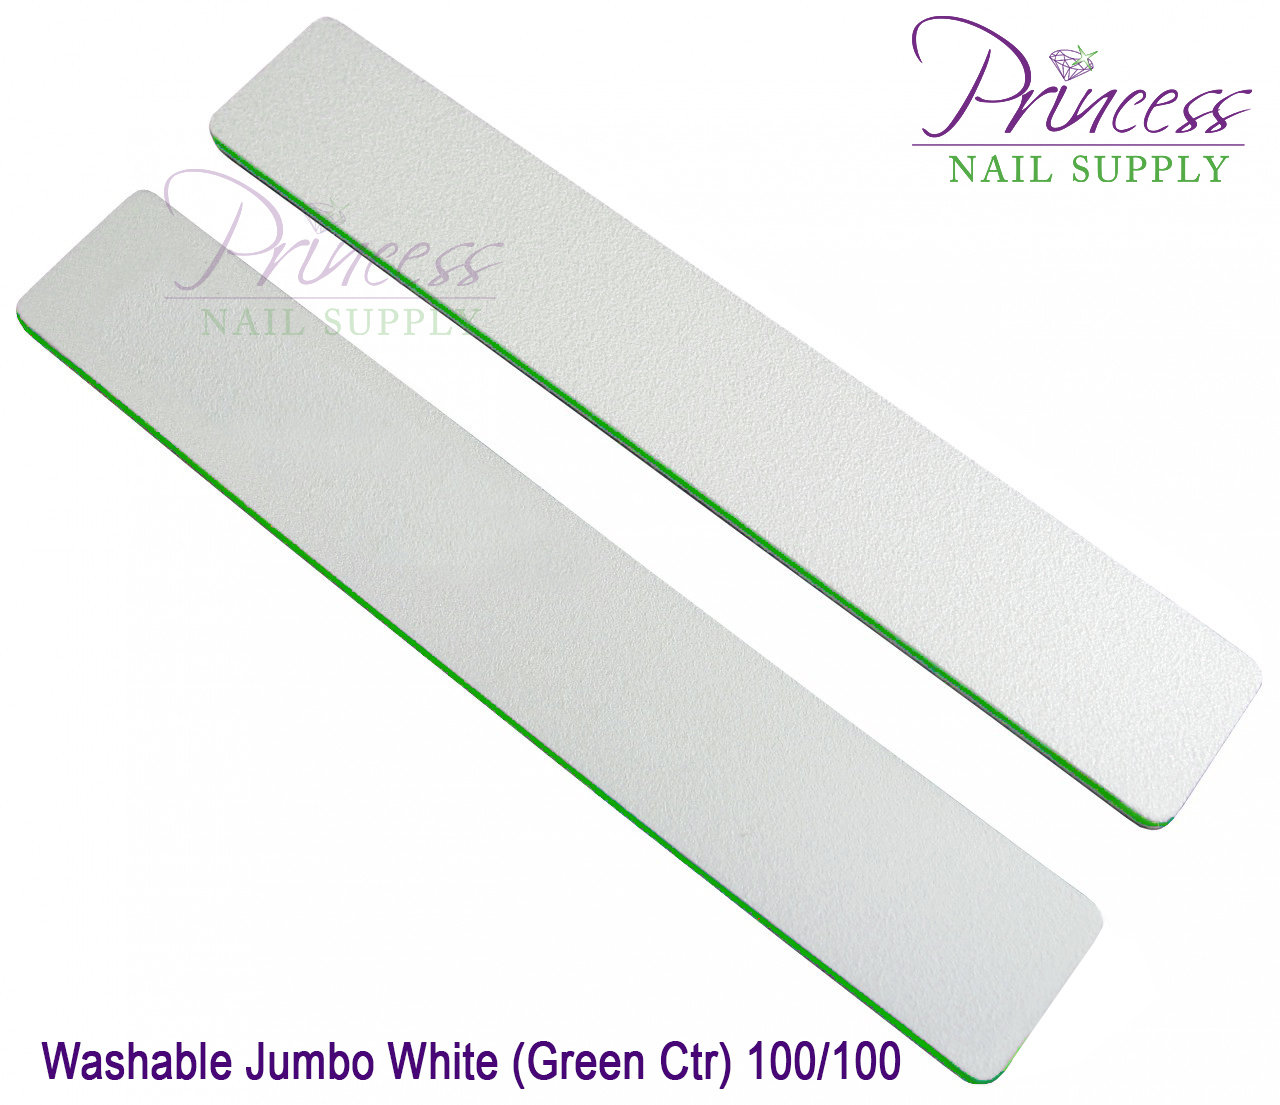 Princess Nail Files, 50 per pack - Washable Jumbo White/Green, Grit: #20104